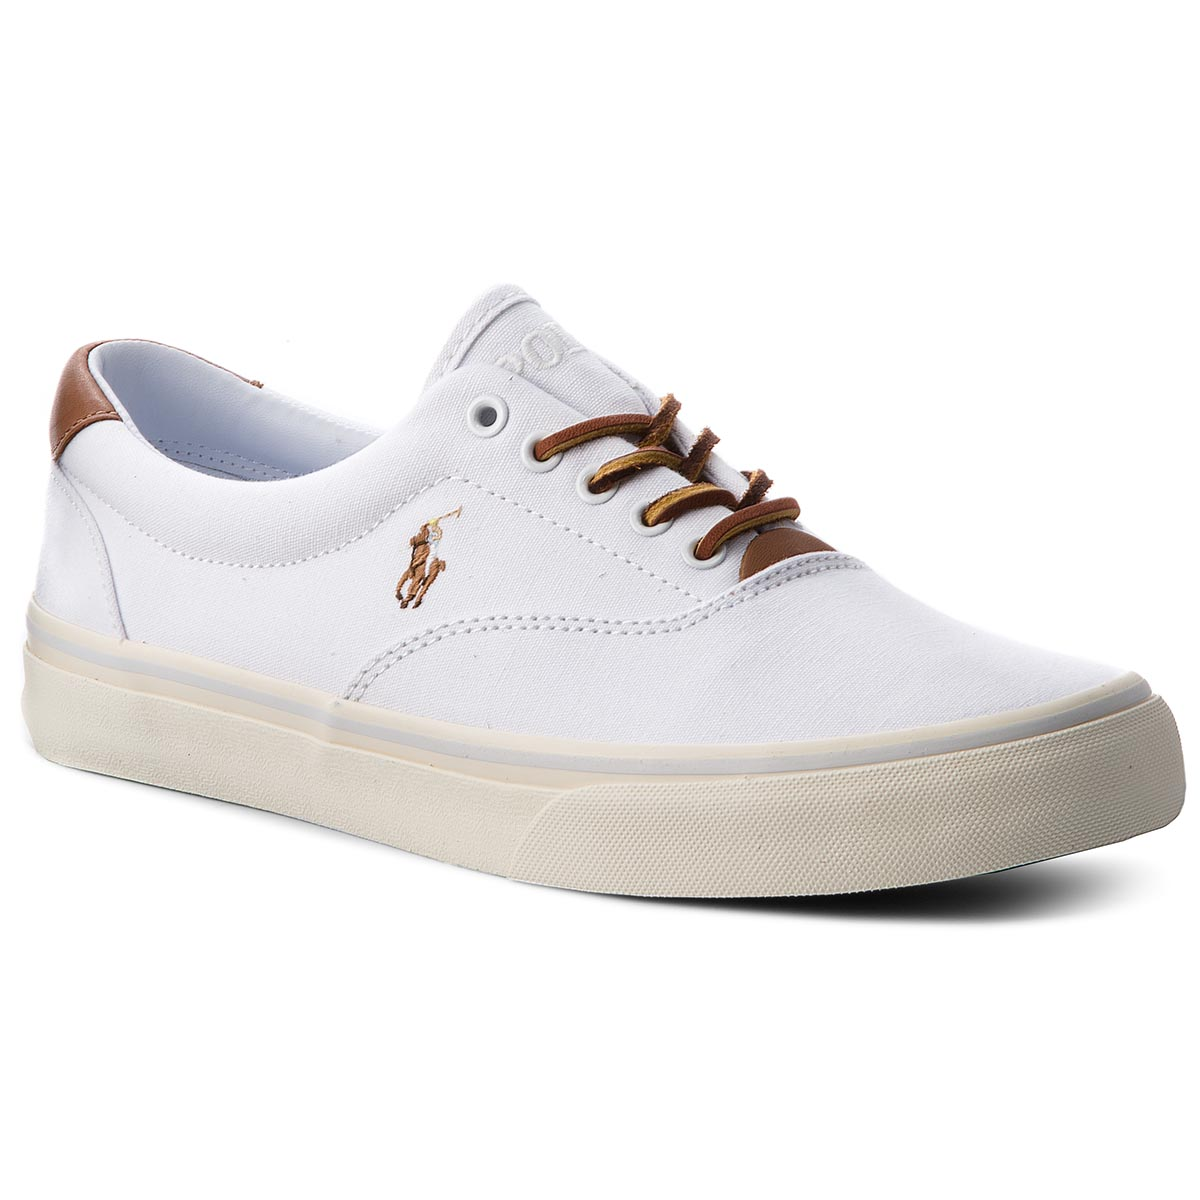 Teniși Polo Ralph Lauren - Thorton 816713107002 White imagine epantofi.ro 2021